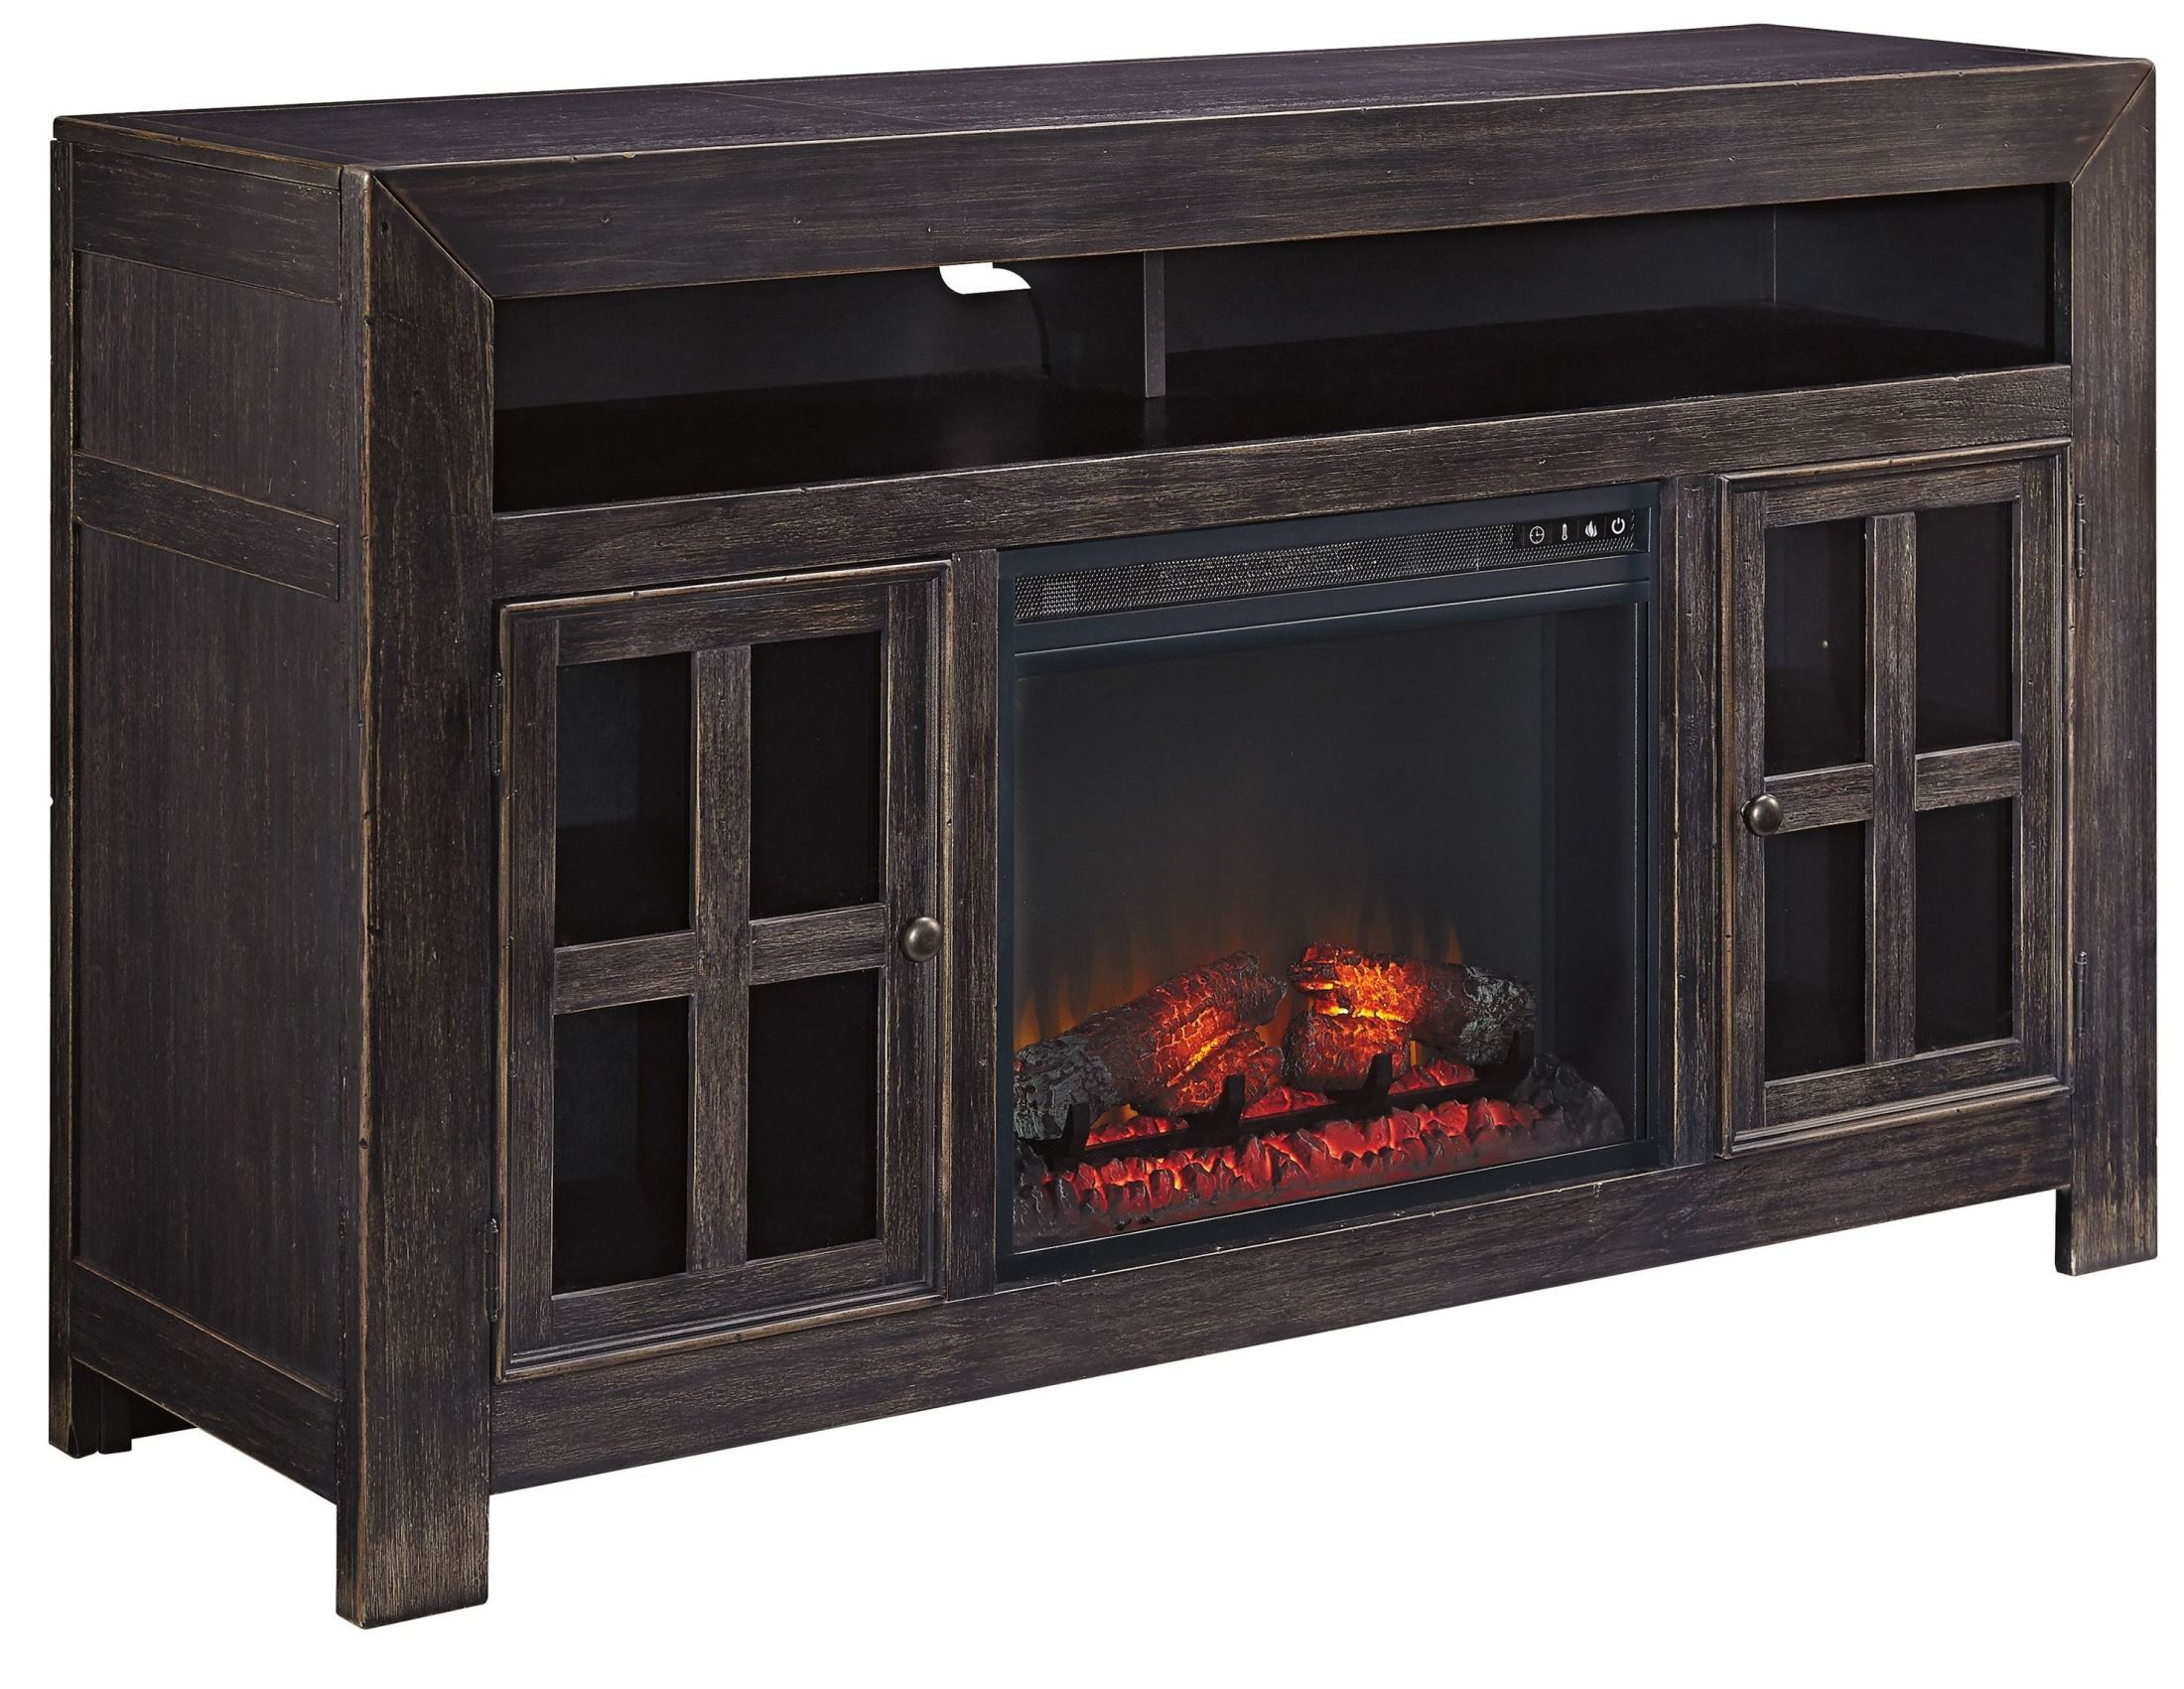 Fantastic Gavelston Lg Tv Stand W Opening To Add Optional Fireplace Complete Home Design Collection Barbaintelli Responsecom